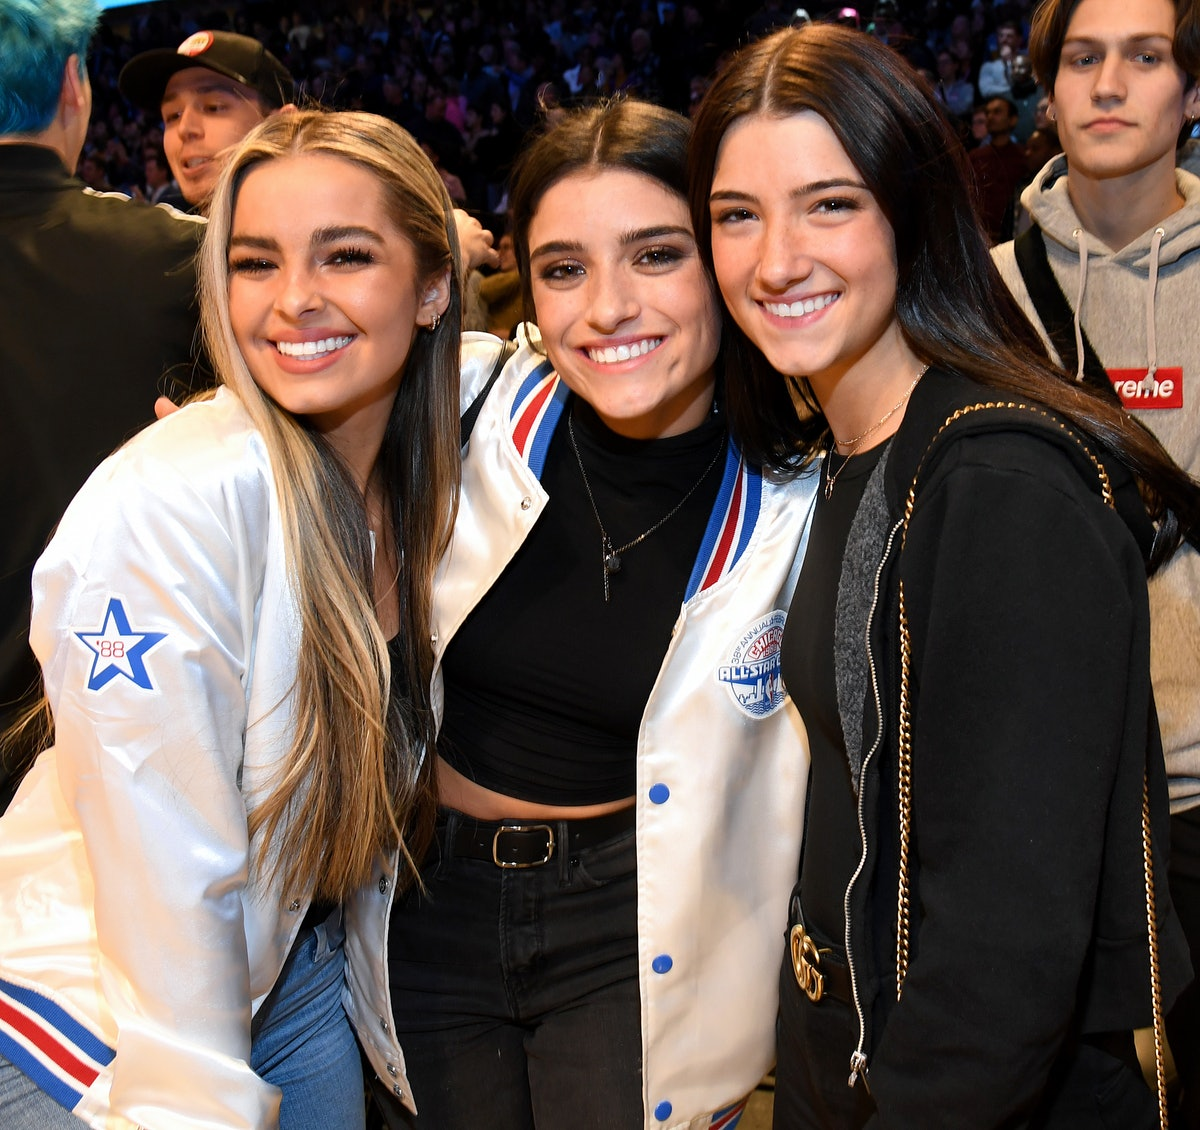 CHICAGO, ILLINOIS - FEBRUARY 15:  (L-R) Addison Rae, Dixie D'Amelio, and Charli D'Amelio attend the 2020 State Farm All-Star Saturday Night at United Center on February 15, 2020 in Chicago, Illinois. (Photo by Kevin Mazur/Getty Images)